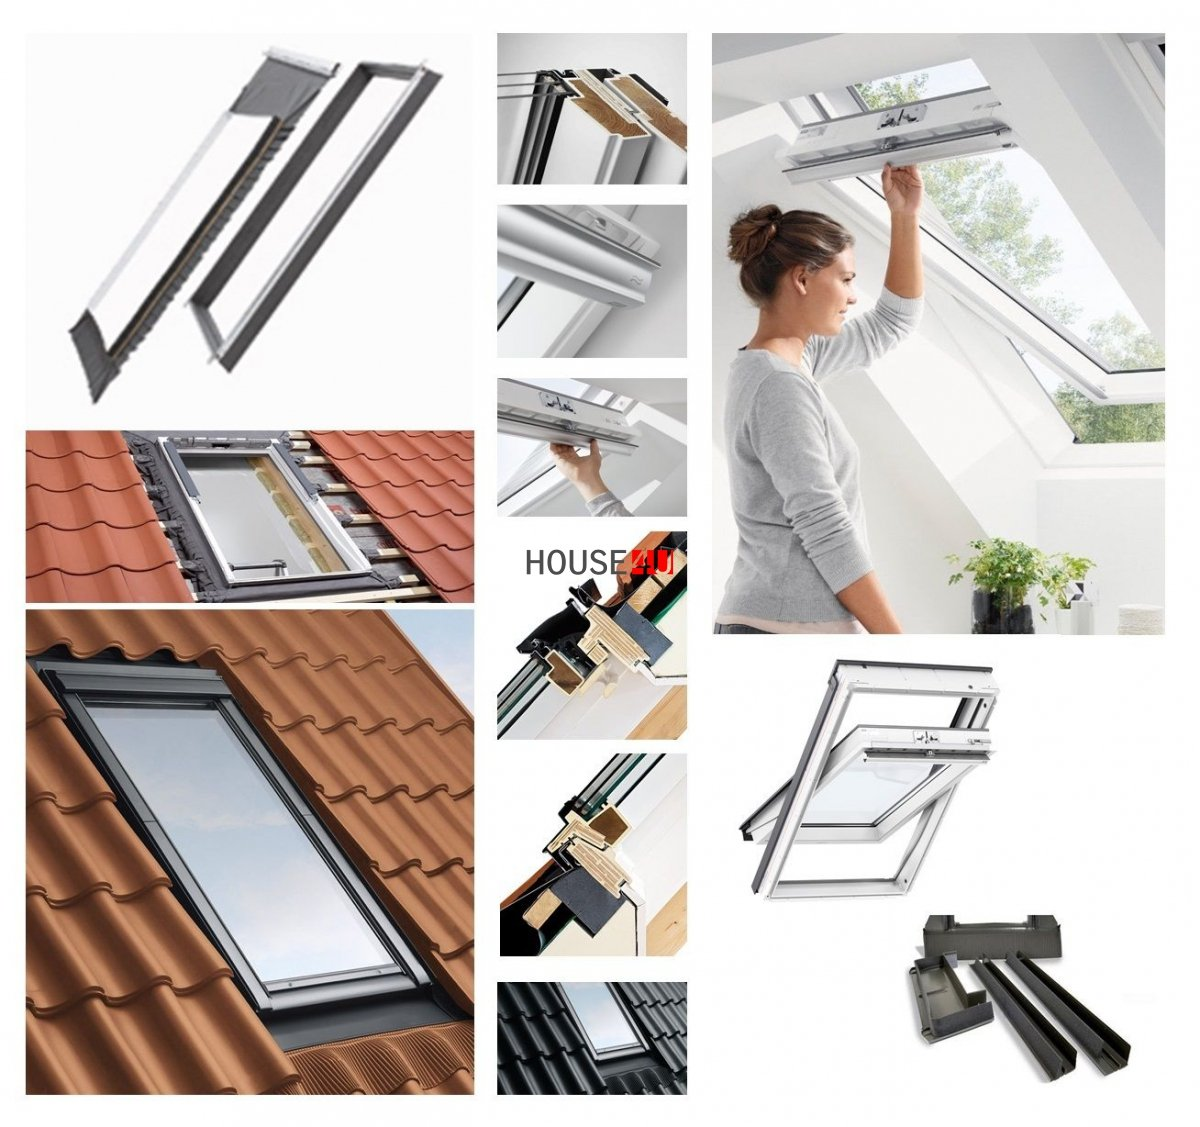 dachfenster set velux glu 0061 3 fach verglasung uw 1 1 schwingfenster kunststoffdachfenster. Black Bedroom Furniture Sets. Home Design Ideas